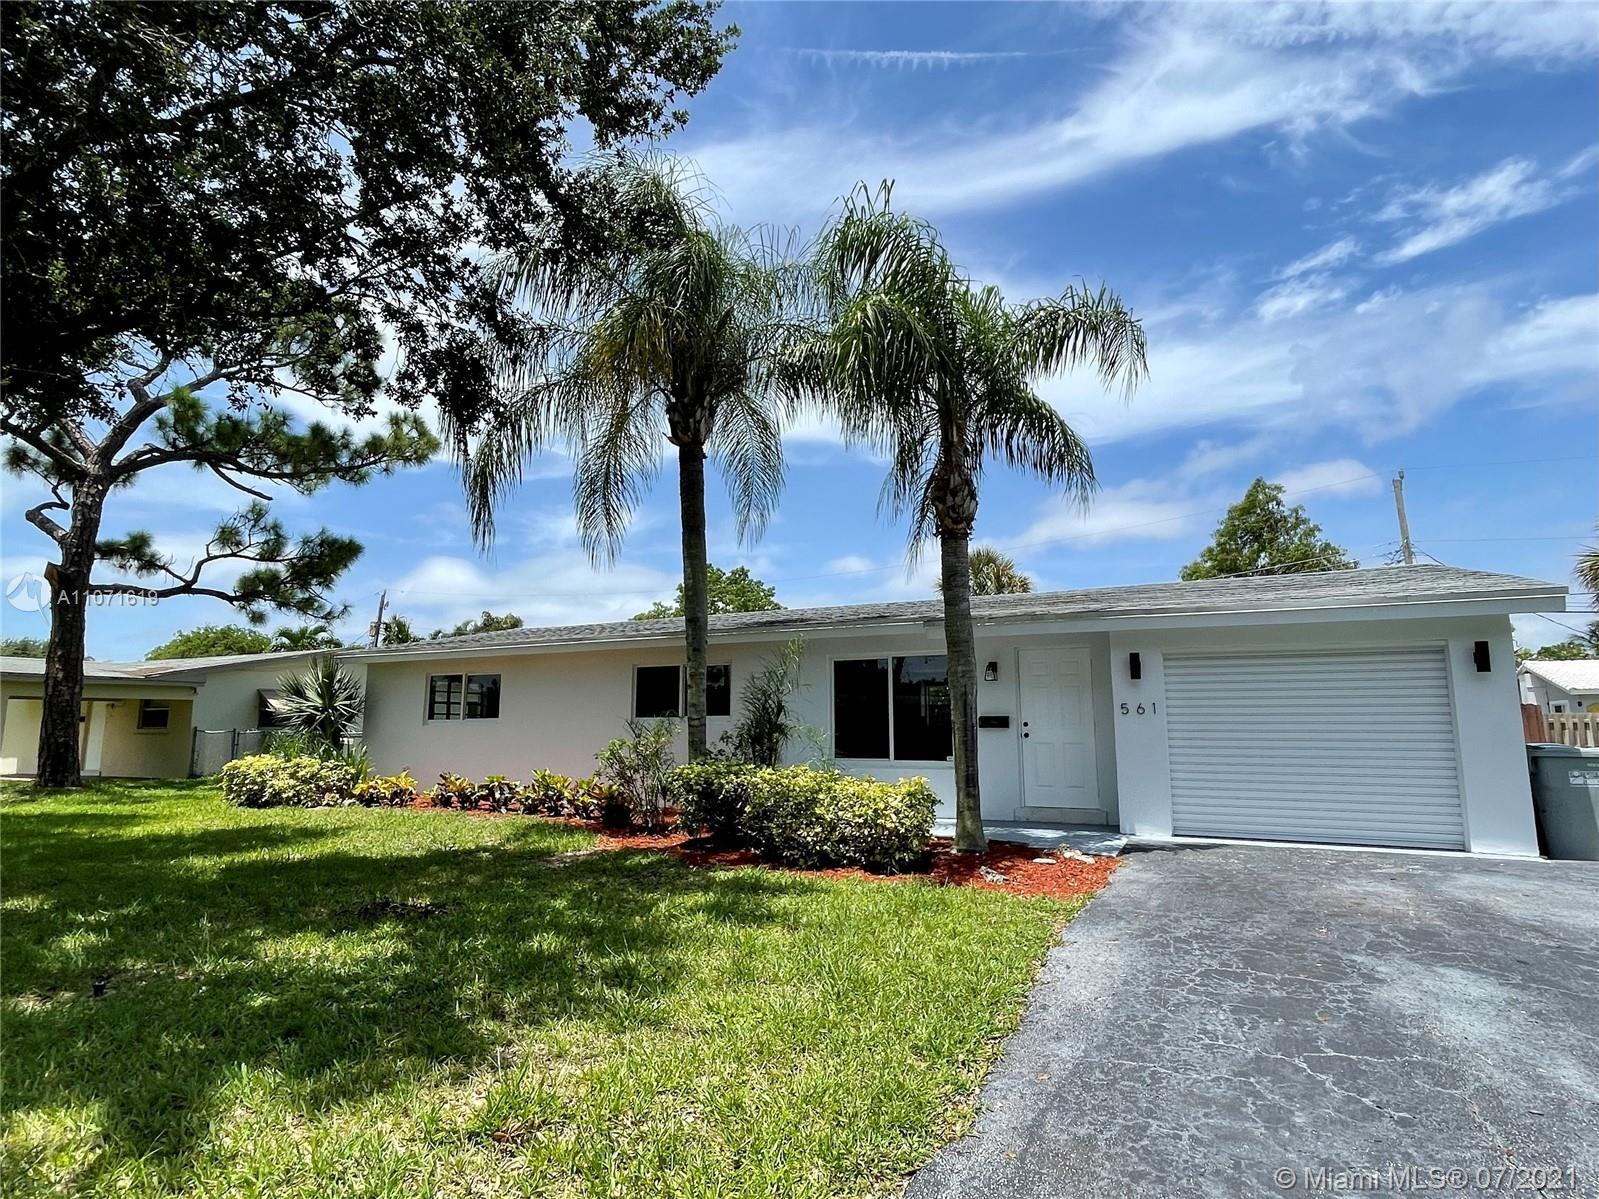 Live in paradise close to sandy beaches in beautiful Pompano Beach one of the fastest-growing cities